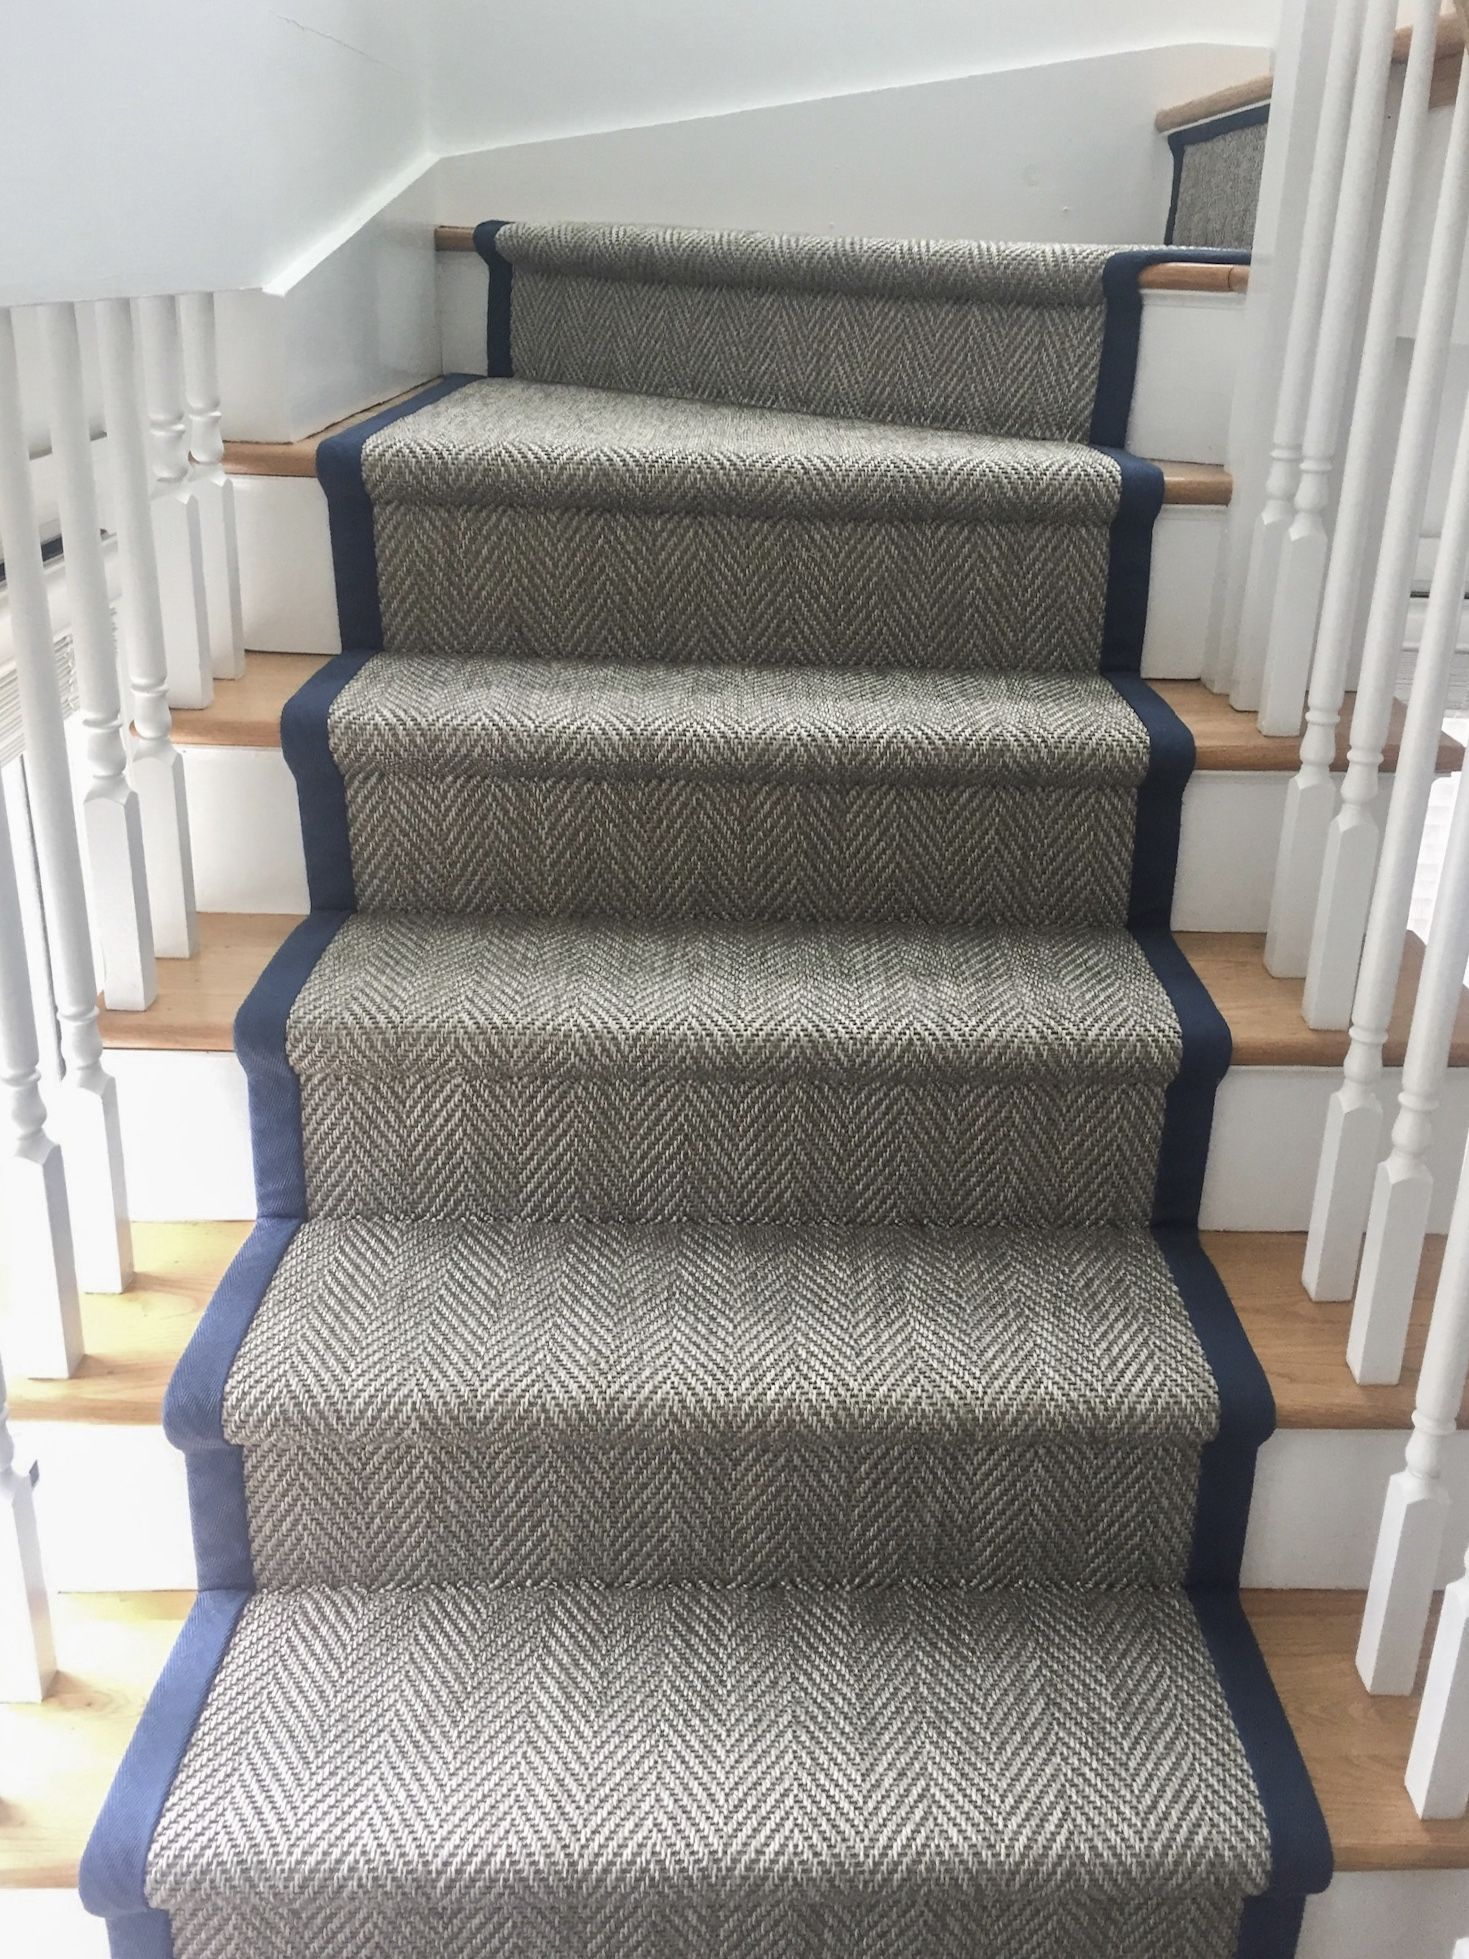 Indoor Outdoor Stair Runner With Nautical Navy Blue Wide Binding   Outdoor Carpet For Stairs   Navy Pattern   Artificial Grass   Front Entrance   Heavy Duty   Mosaic